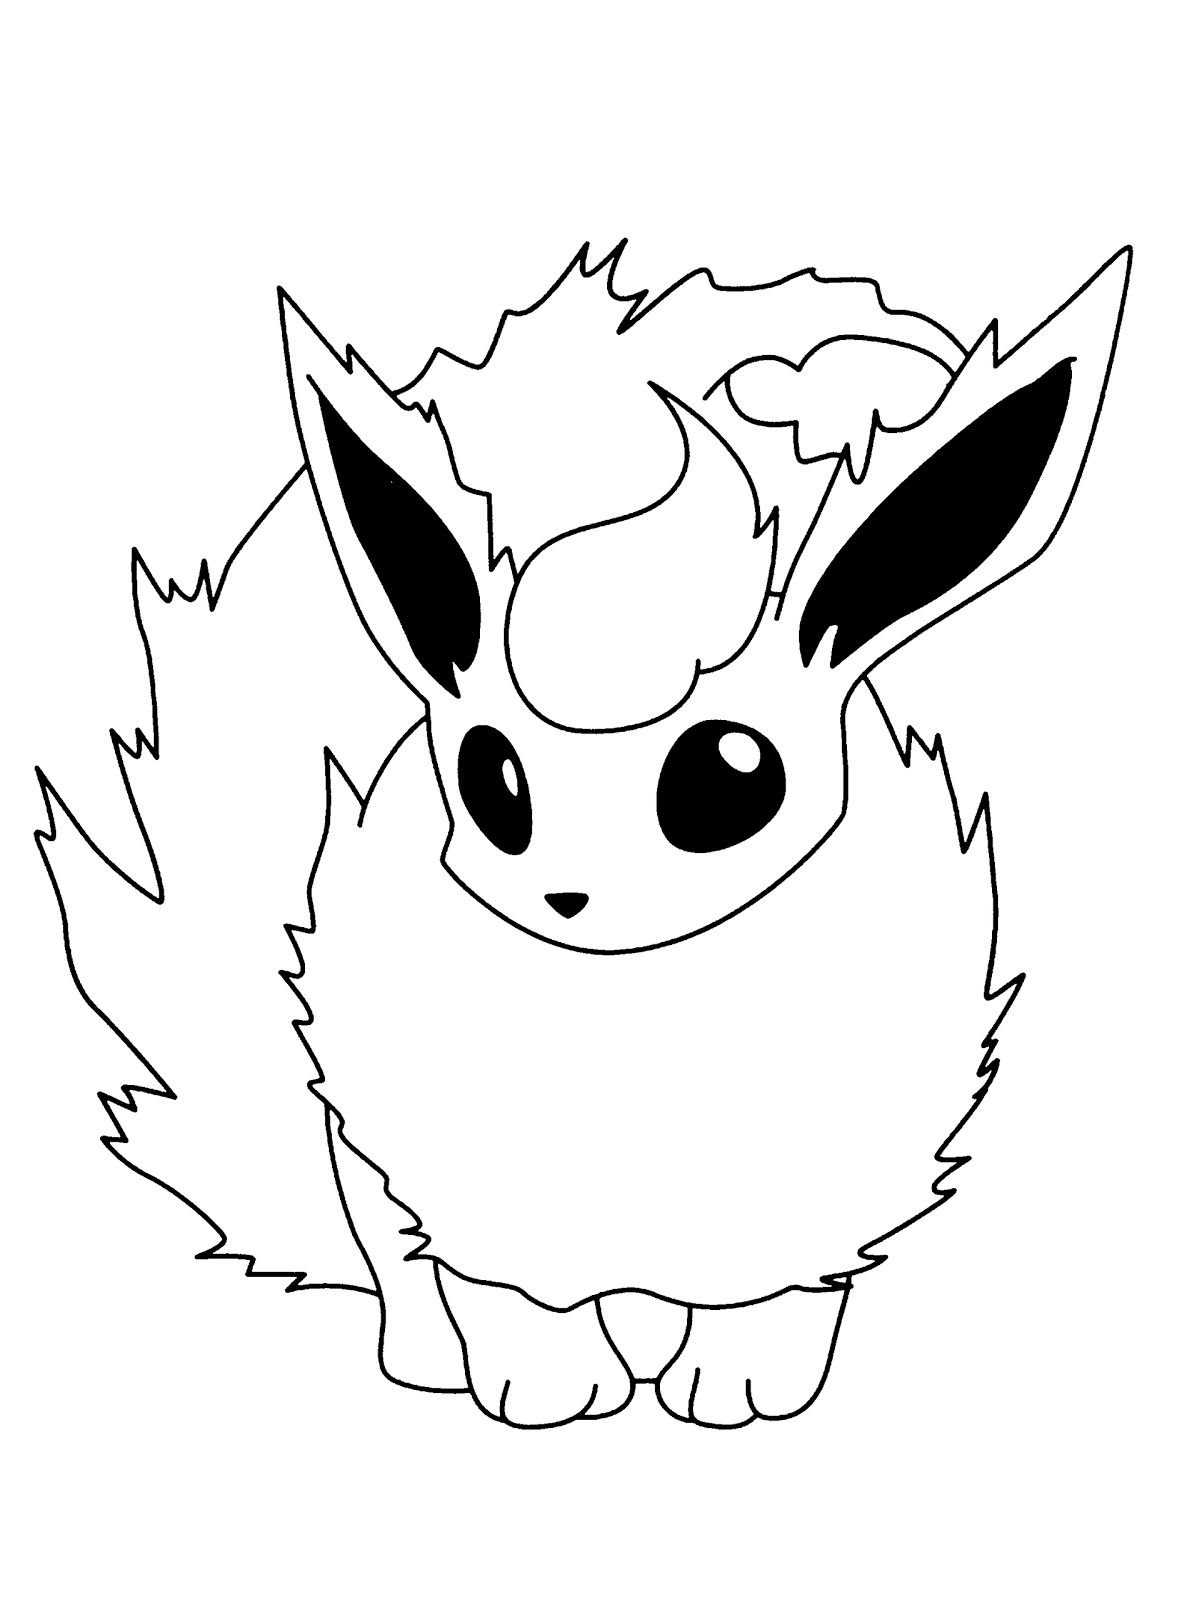 Best HD Cute Pokemon X And Y Coloring Pages Image - Free ...